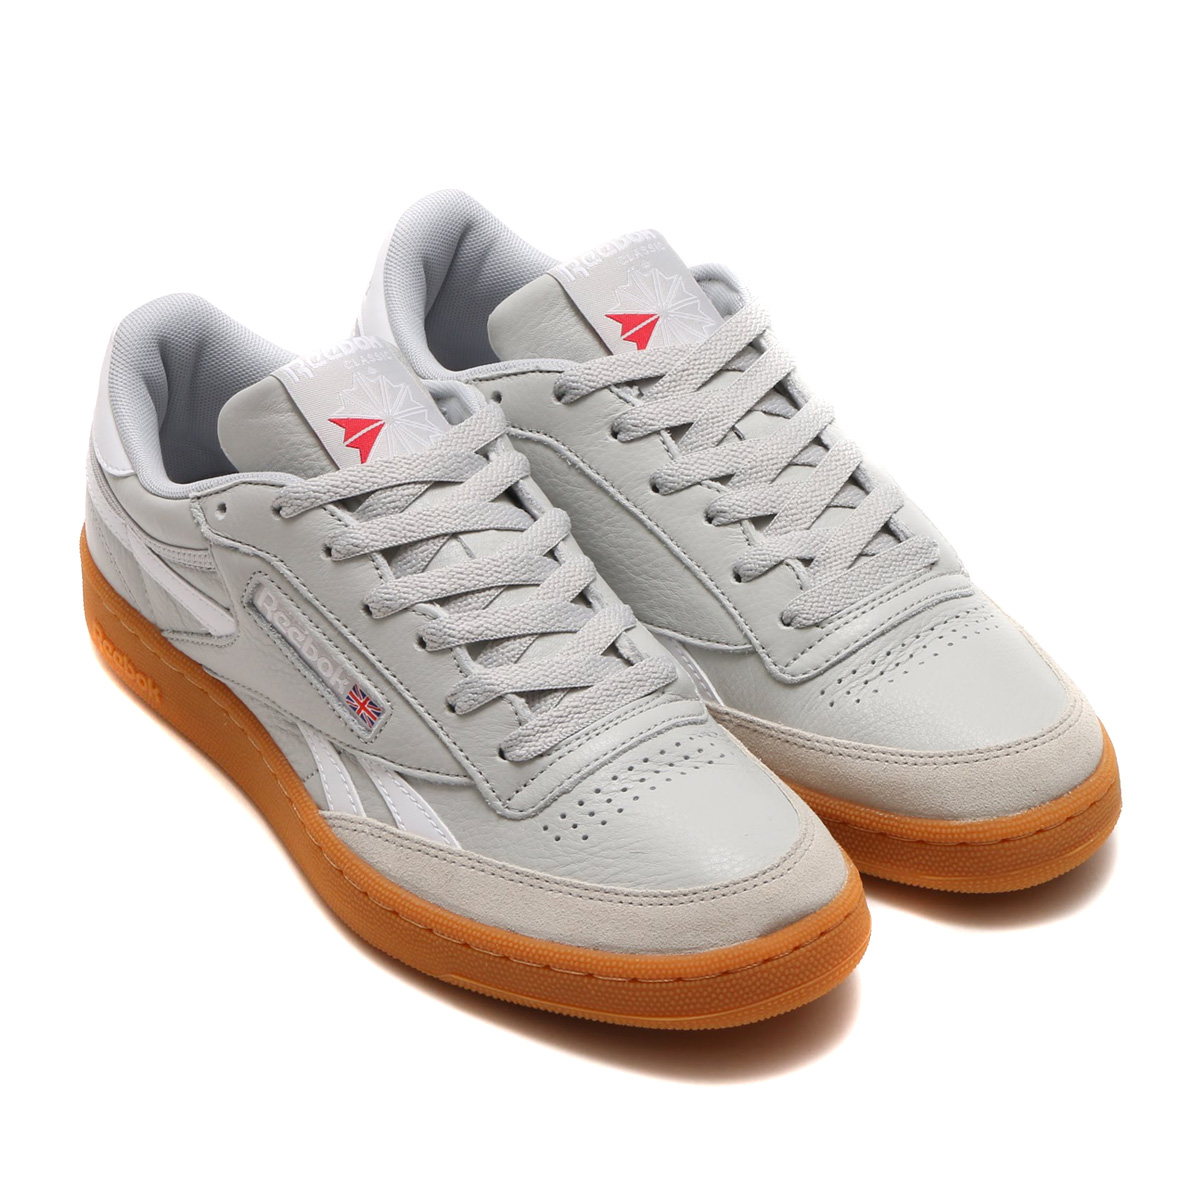 a05357cebd4 REVENGE PLUS where was made raunch in 1986 in the next year of the release  of CLUB C of REEBOK. The looks closely resembles it with CLUB C